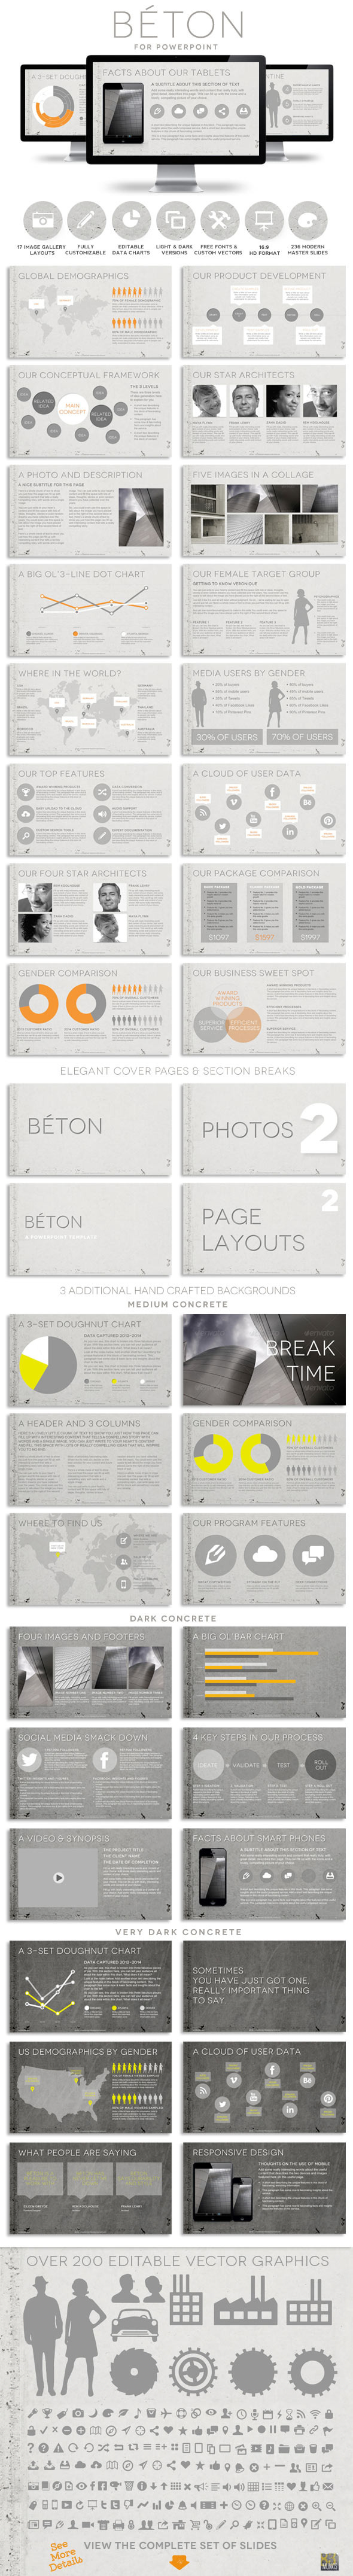 GraphicRiver Beton Powerpoint Presentation Template 10510868